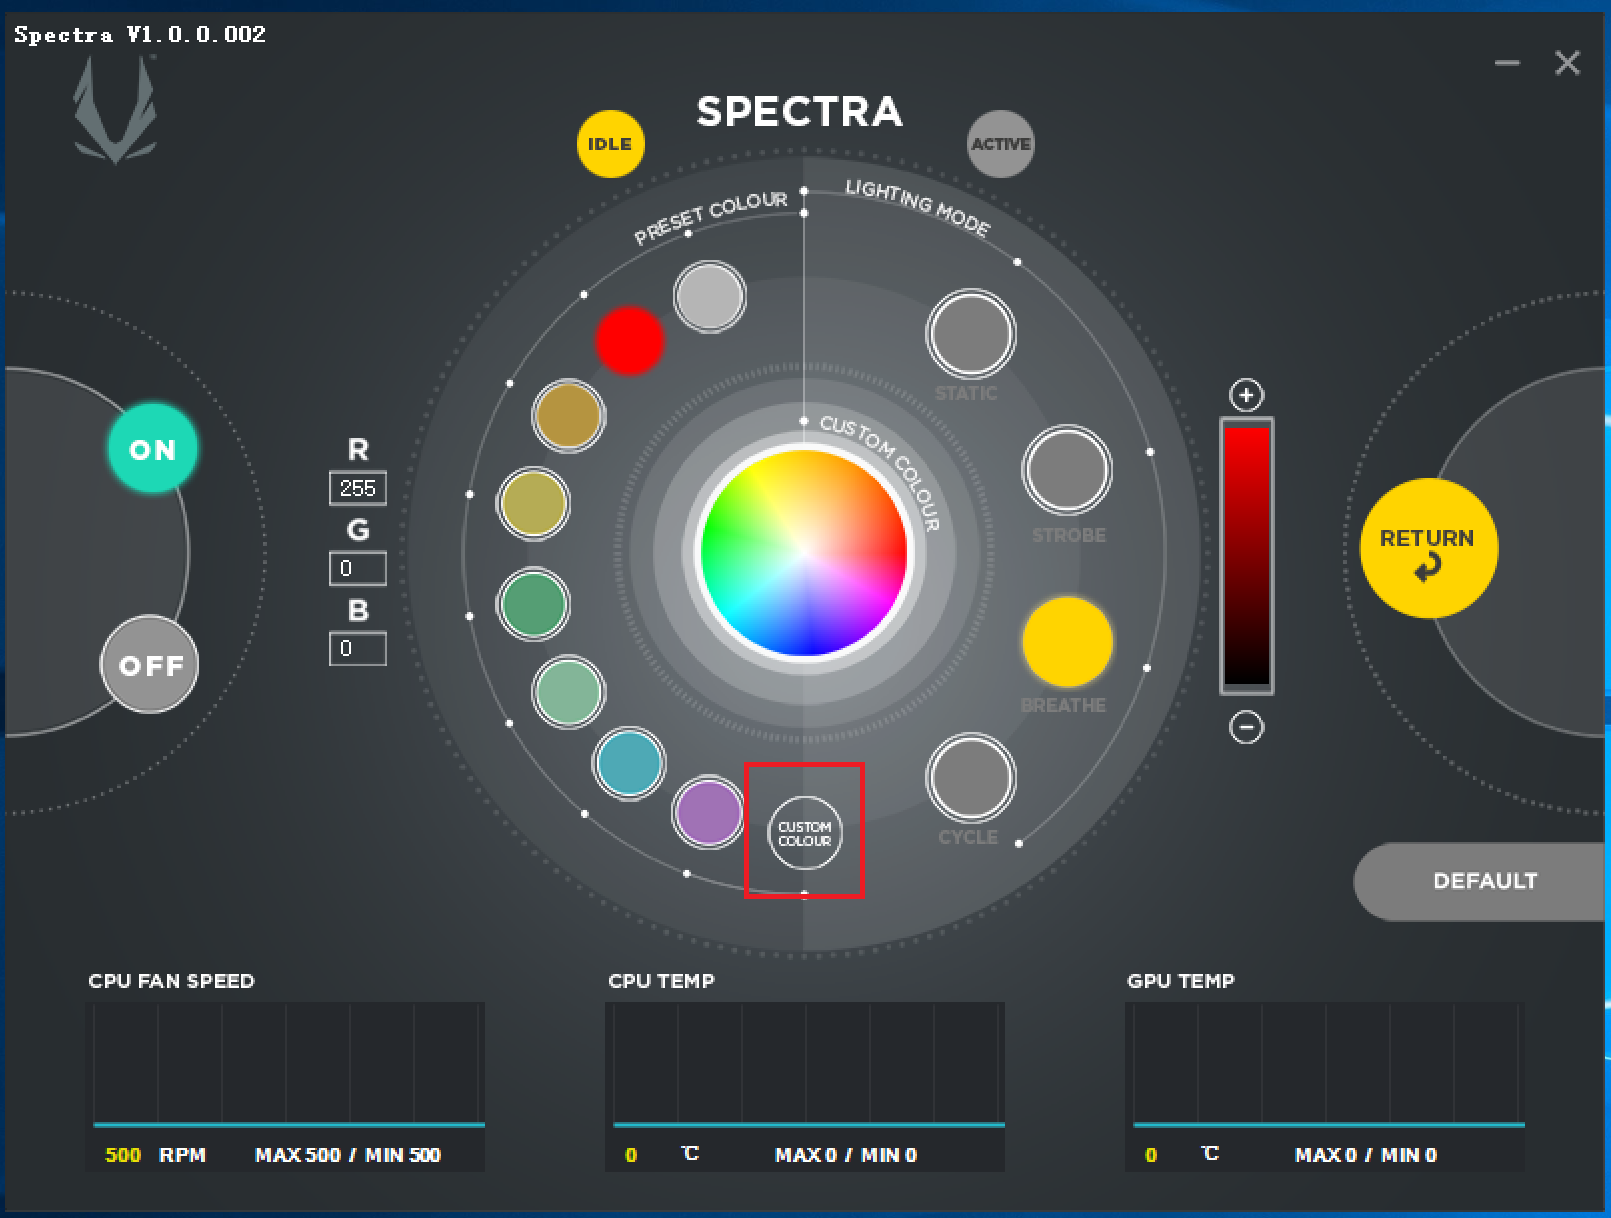 How to use the ZOTAC GAMING SPECTRA Utility | ZOTAC